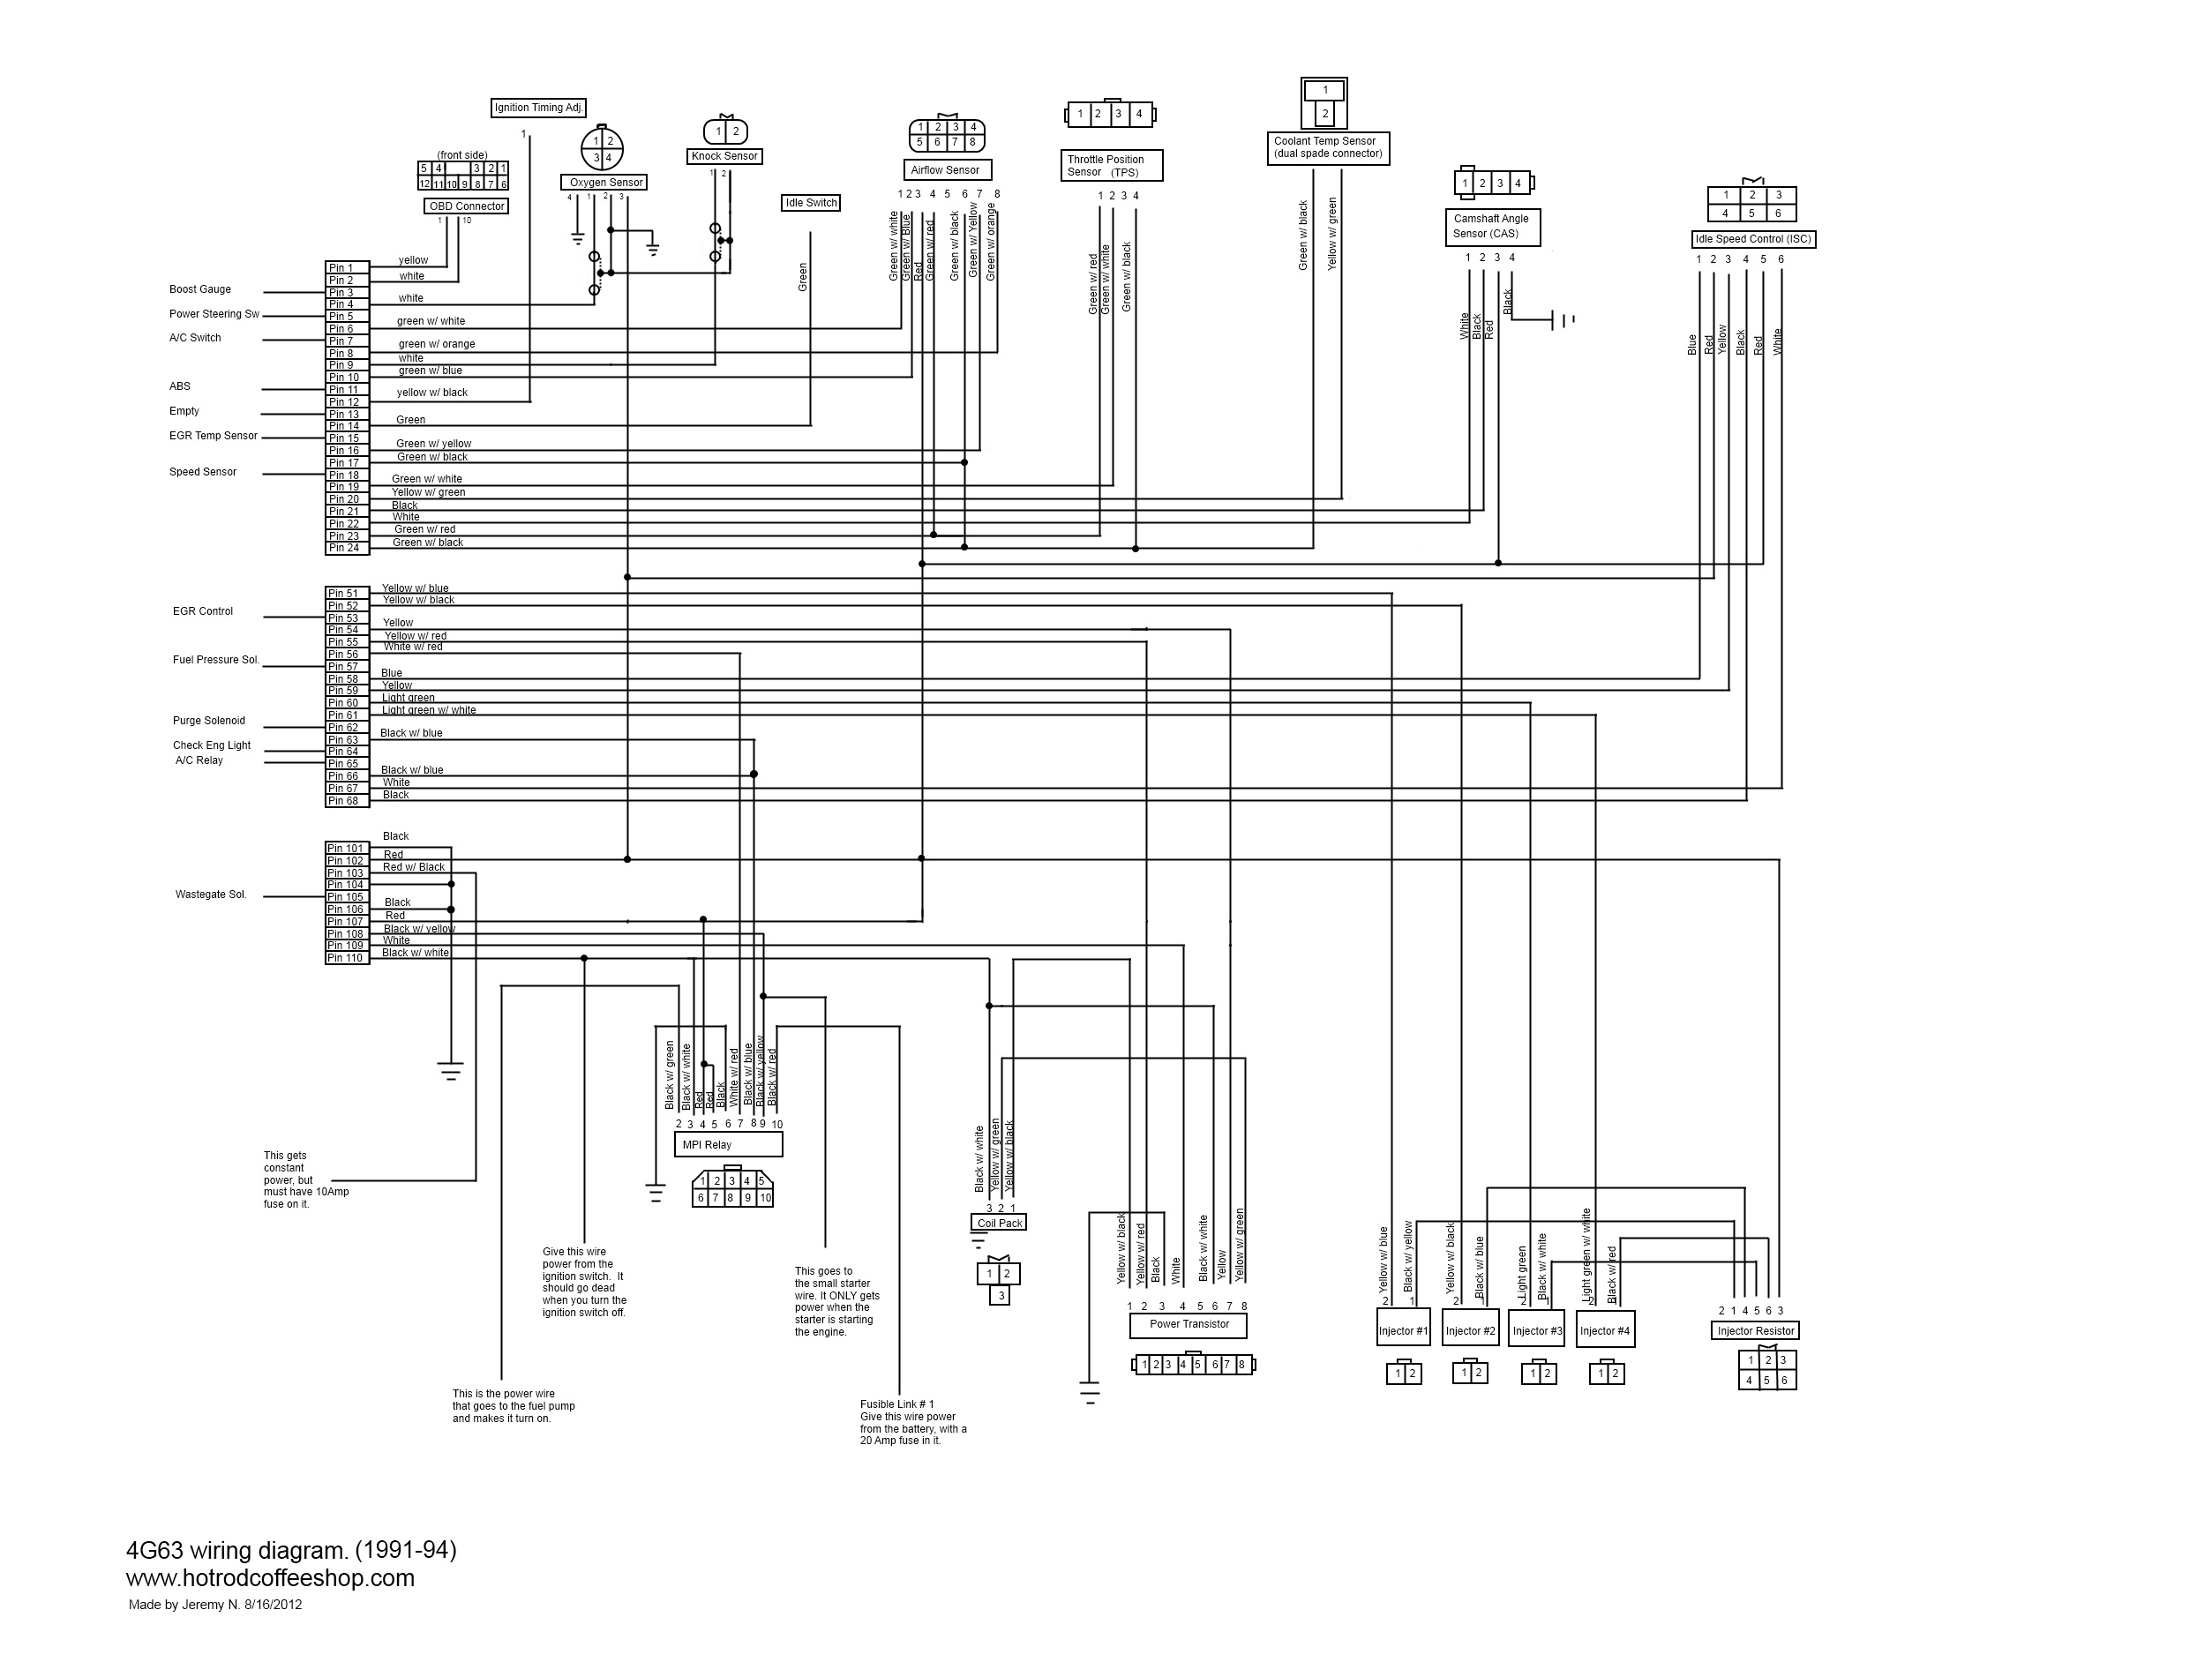 4g63ecudiagram_1 4g63 wiring diagrams schematics for engine swaps engine wiring diagram at crackthecode.co